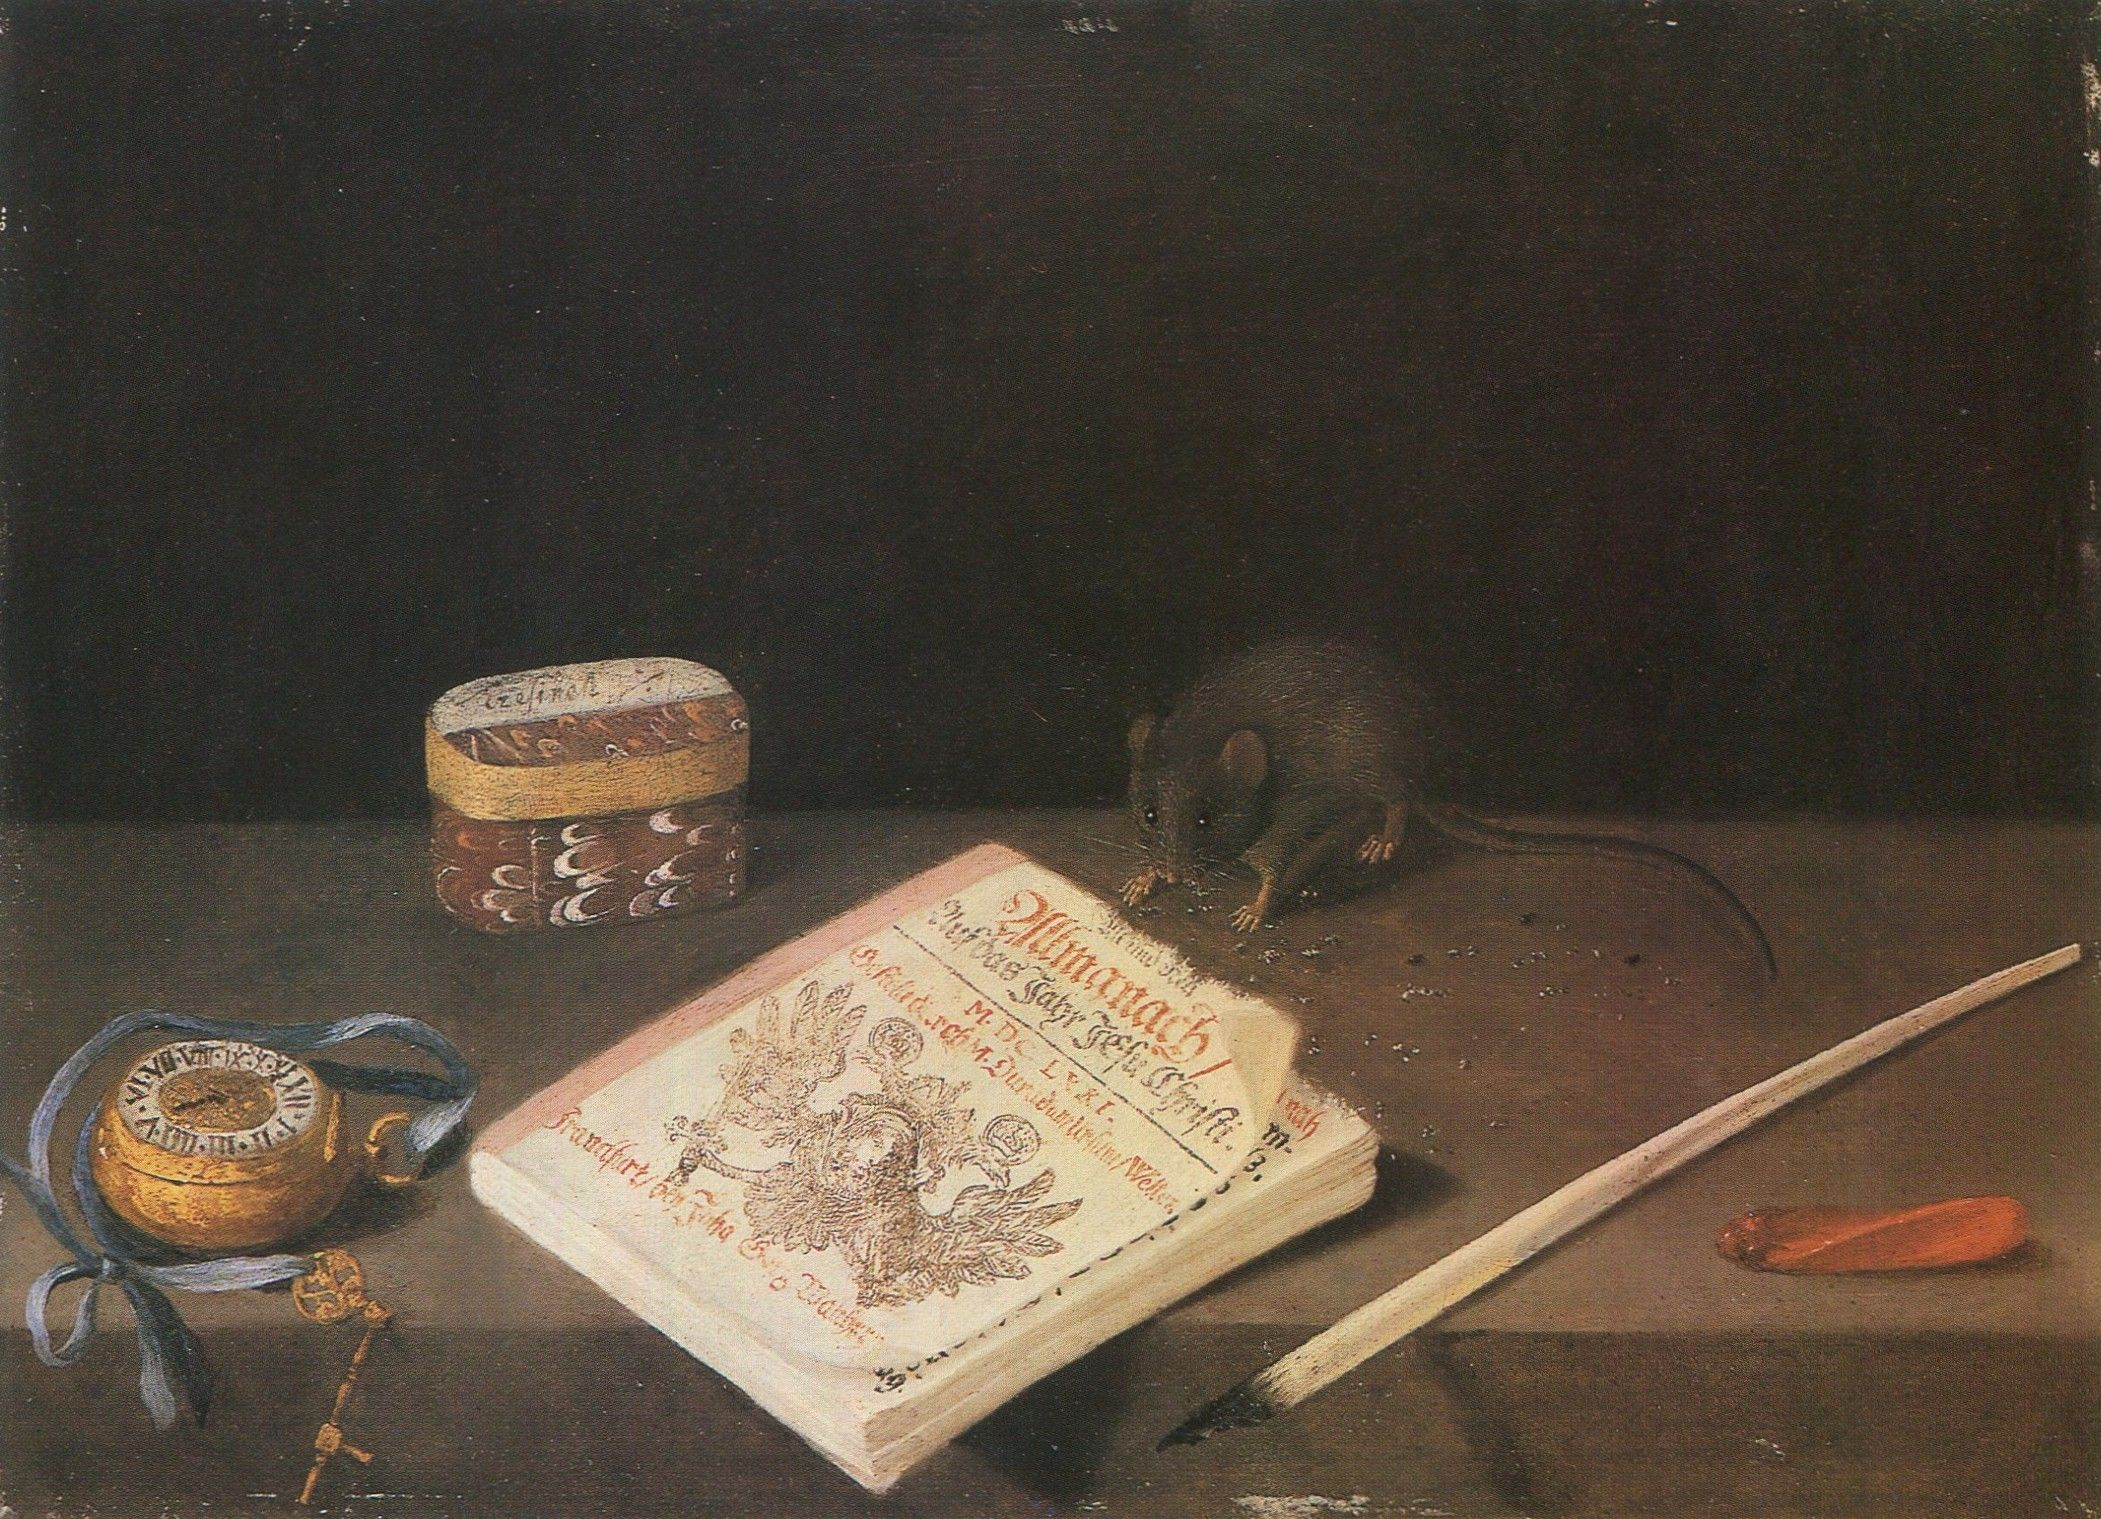   School of Frankfurt, circa 1671 - A Mouse chewing an Almanac with a Pocket Watch, a Quill, Sealing Wax and a Box on a Ledge  